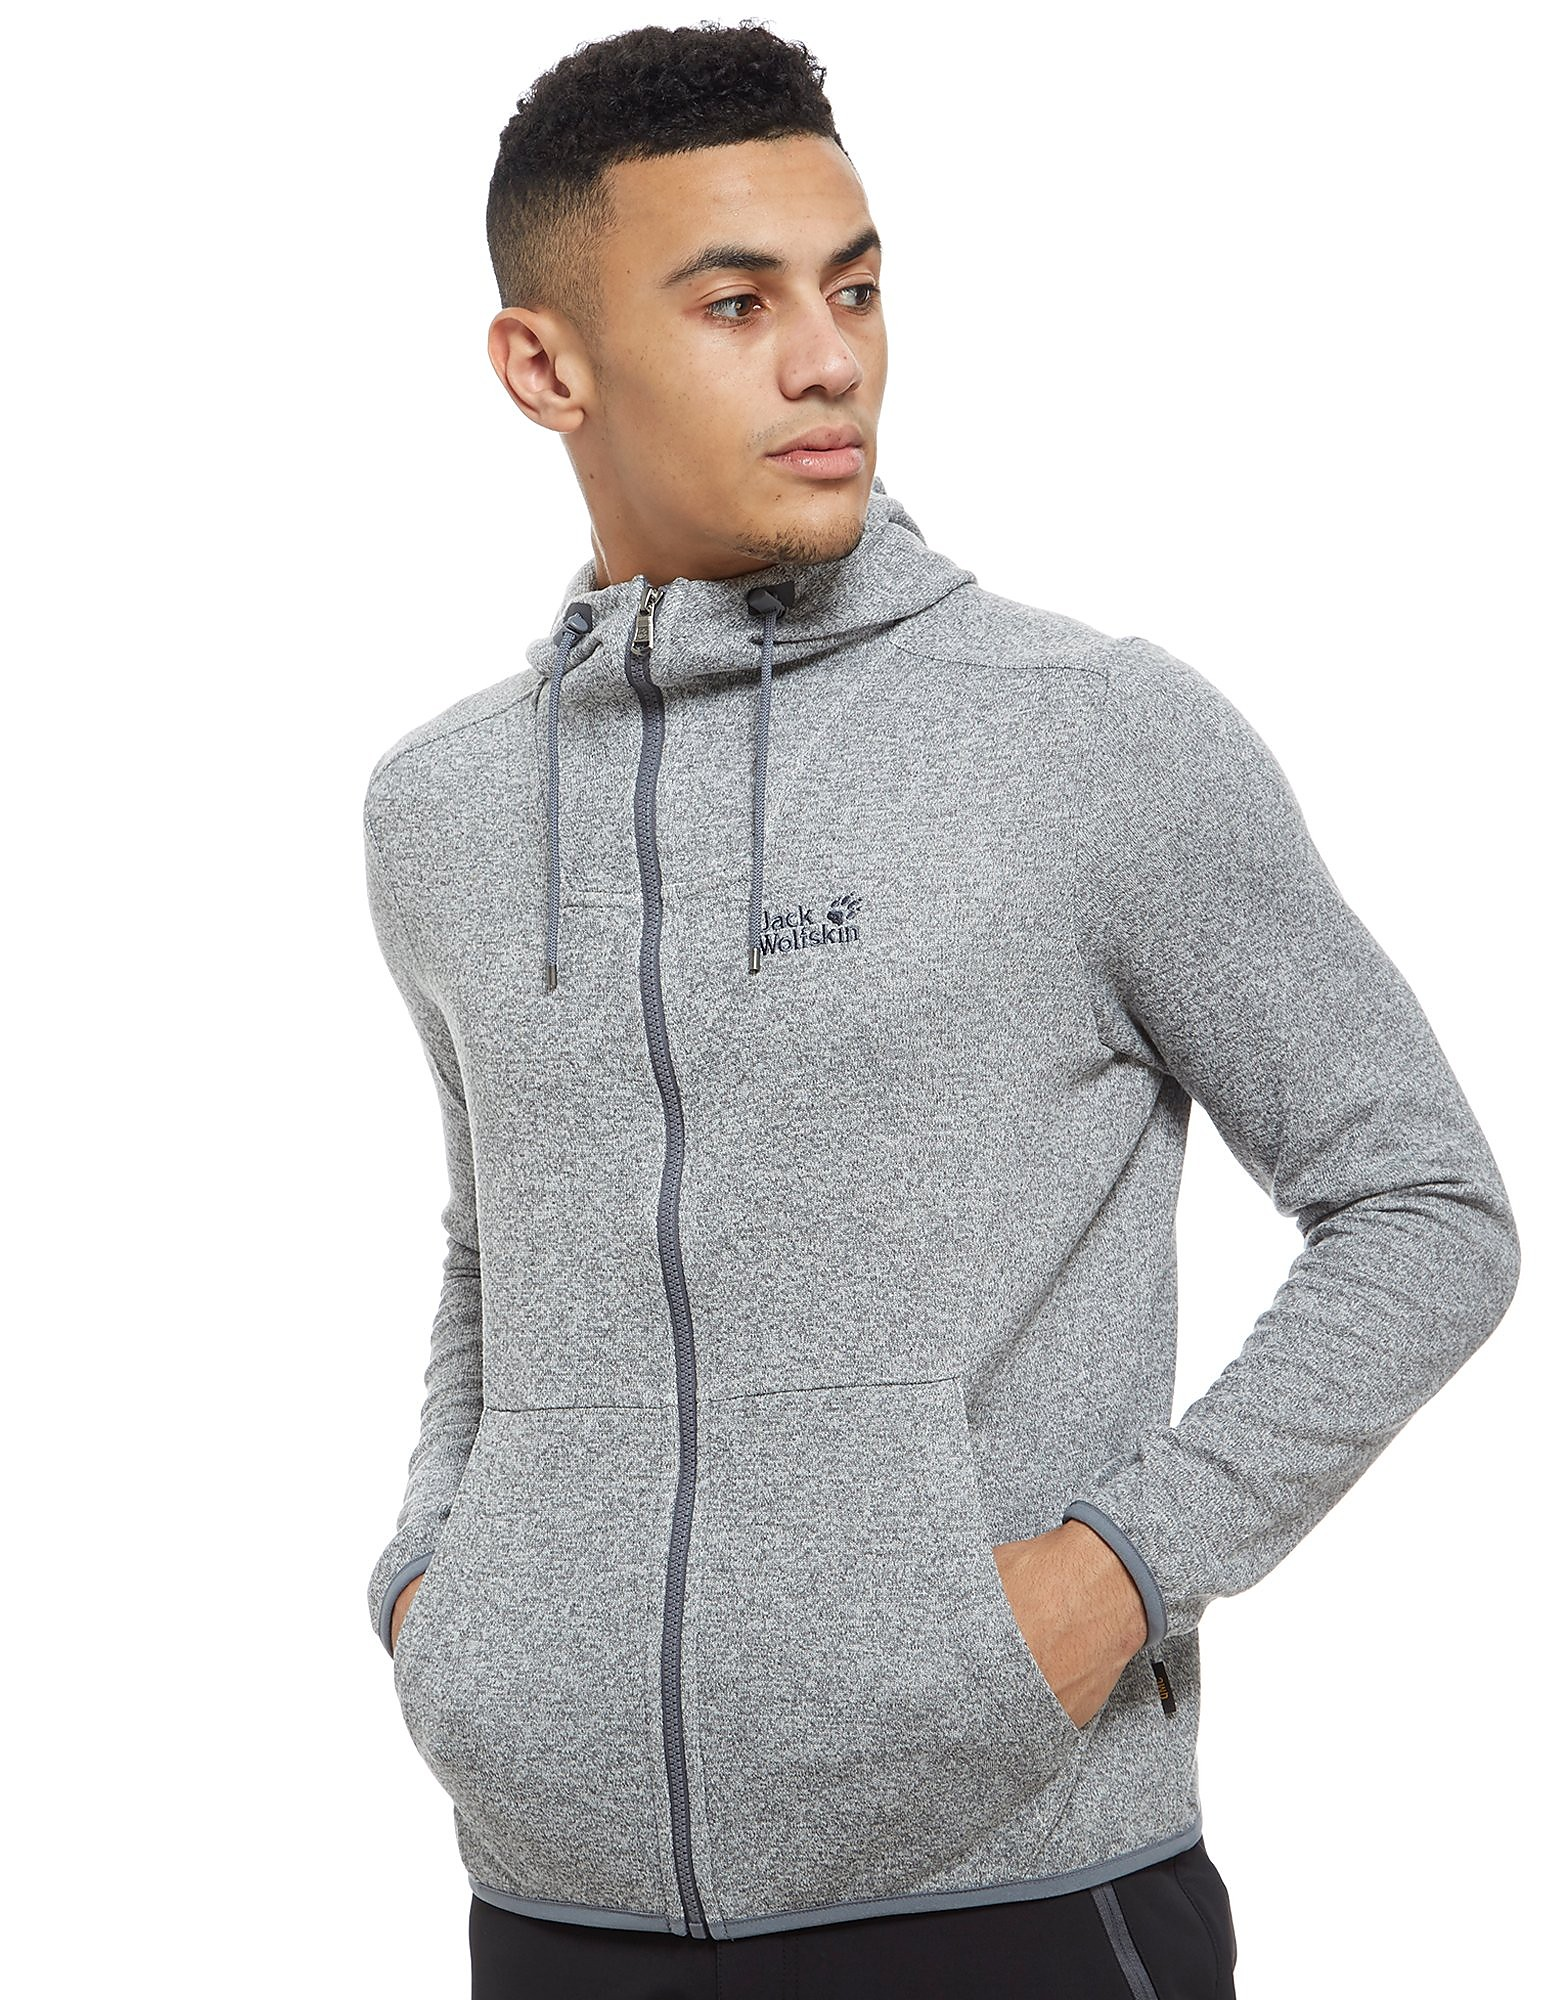 Jack Wolfskin Finley Zip Through Sweatshirt